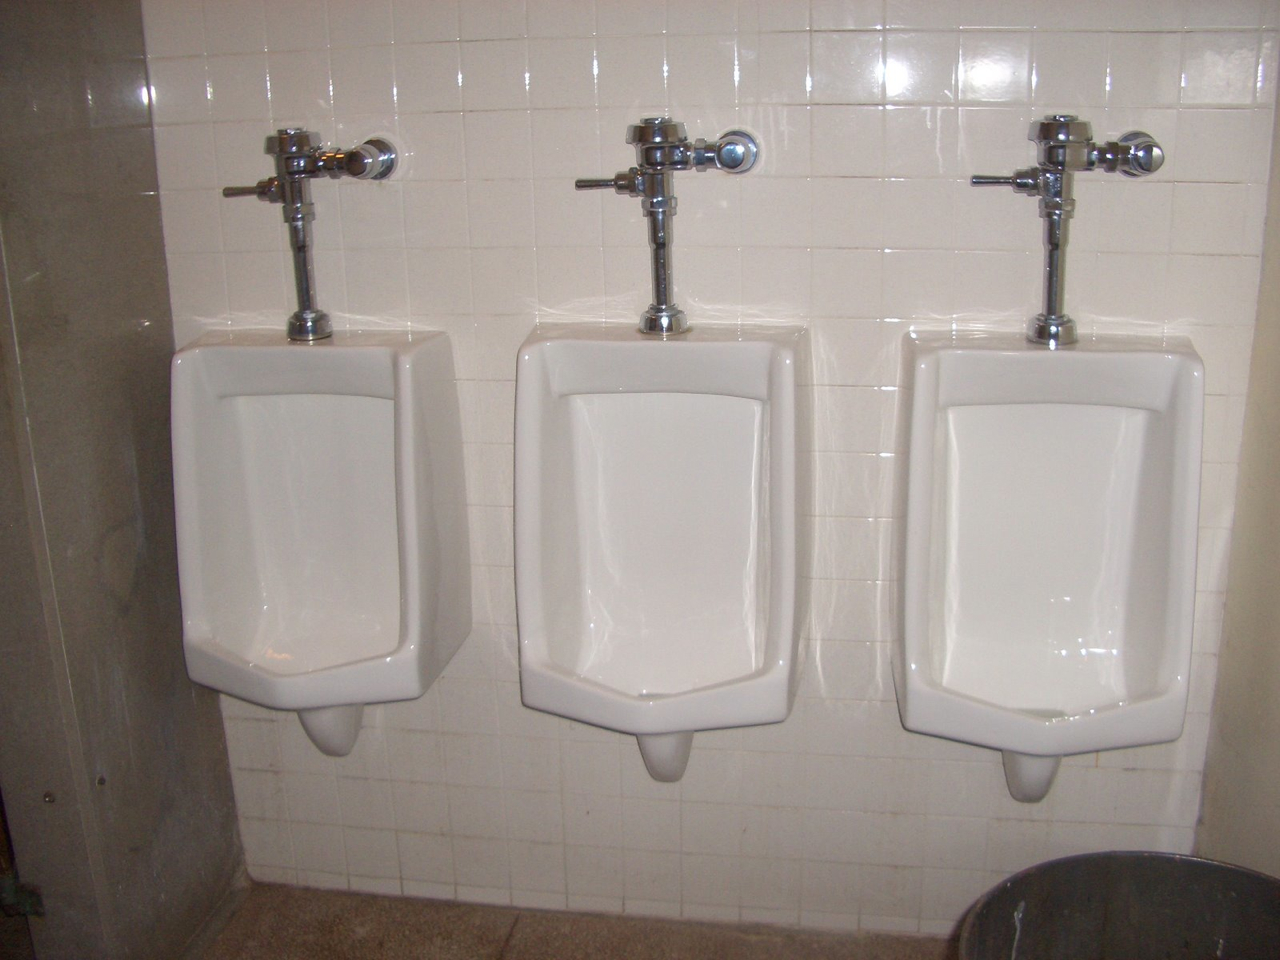 I Hate Urinals (Public Restroom Hate Thread)